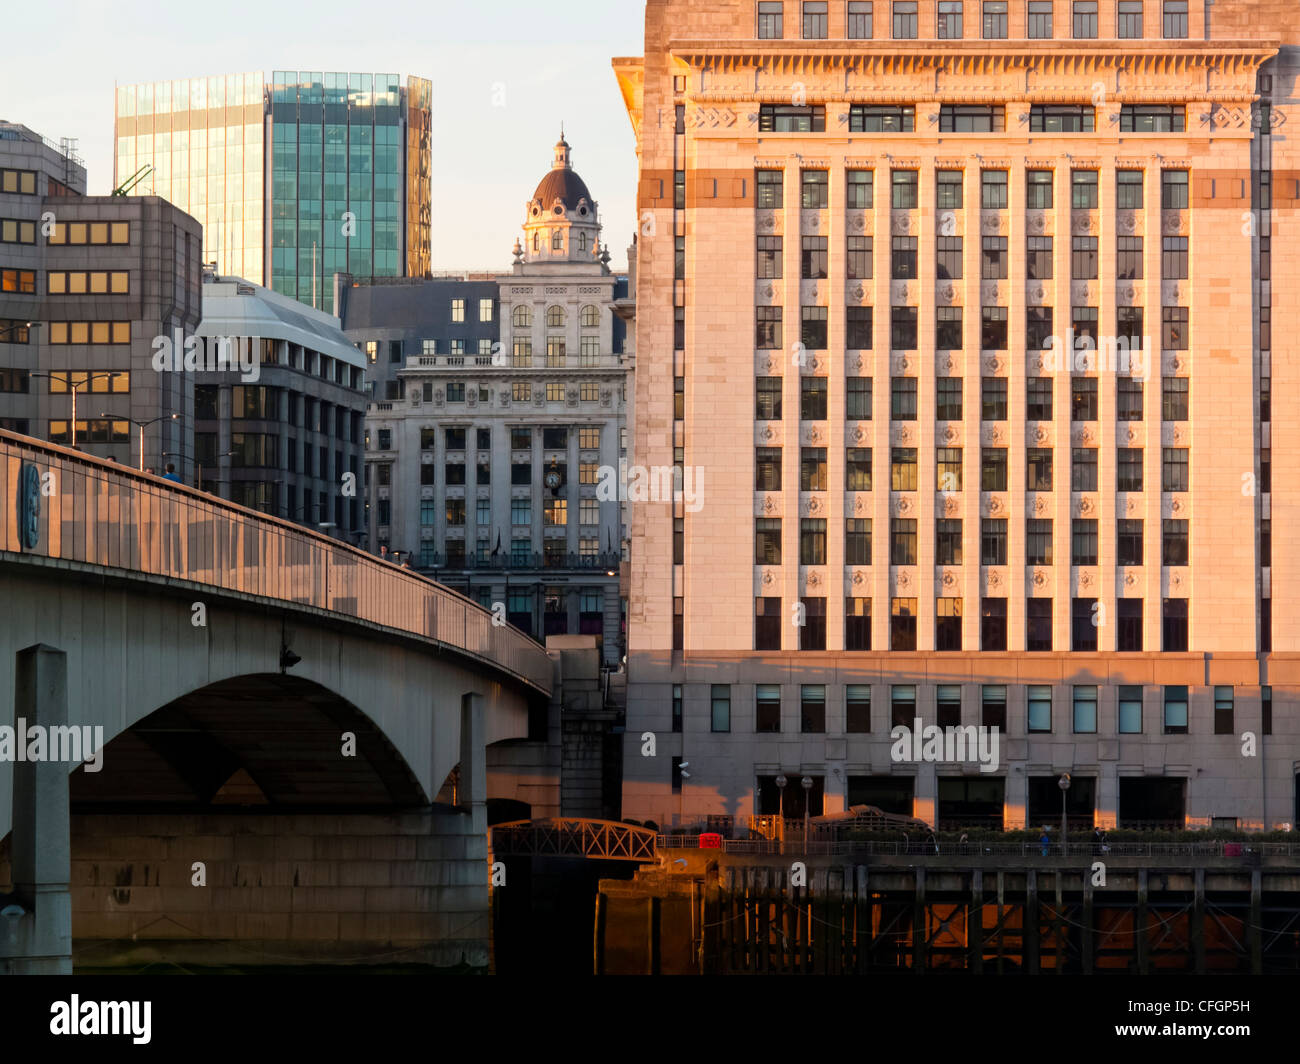 View over London Bridge towards the City of London banking and financial district England UK - Stock Image